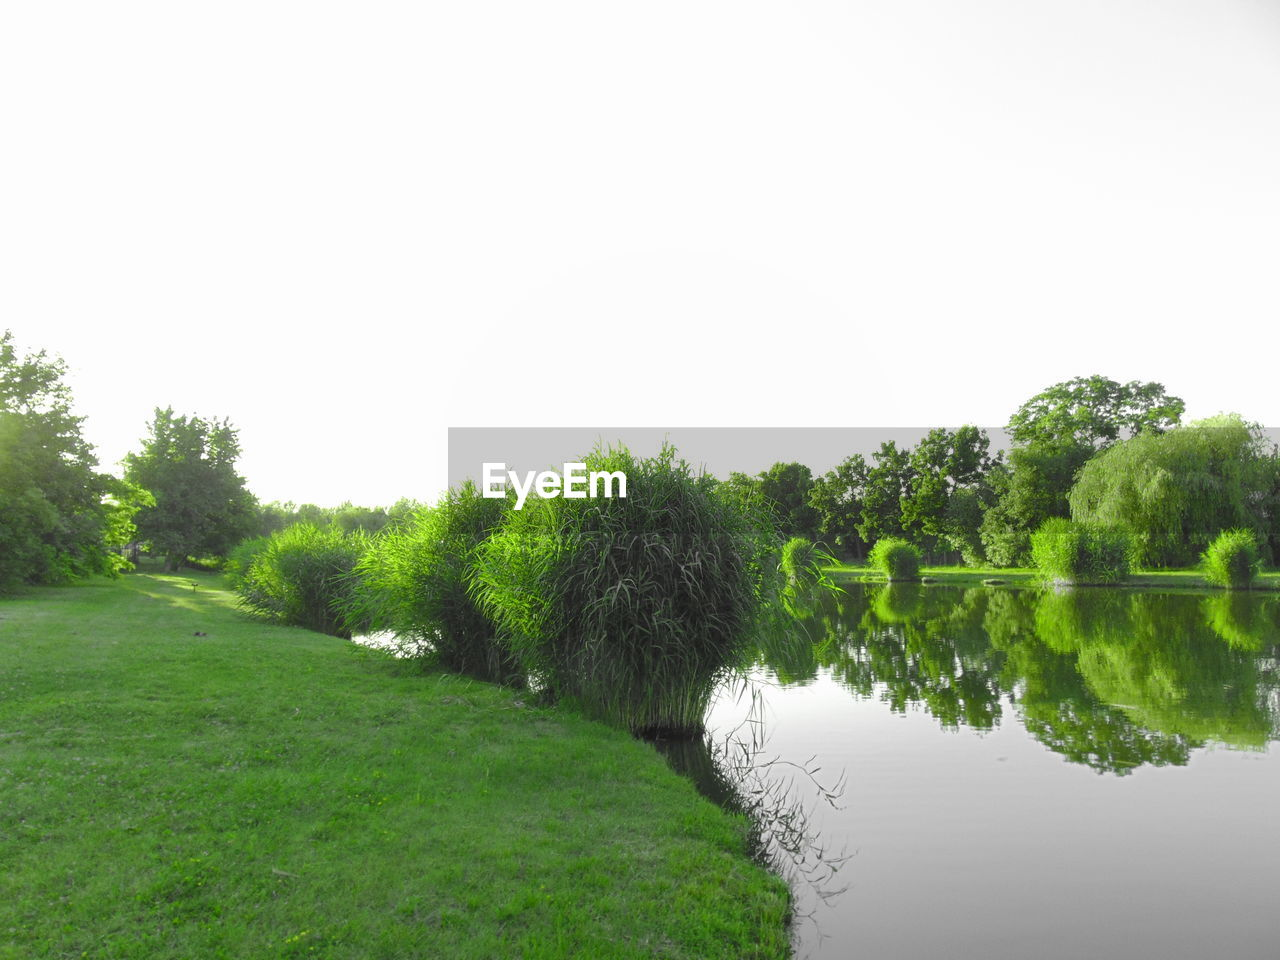 plant, tree, water, green color, copy space, sky, nature, tranquility, lake, scenics - nature, clear sky, tranquil scene, no people, grass, beauty in nature, day, environment, growth, reflection, outdoors